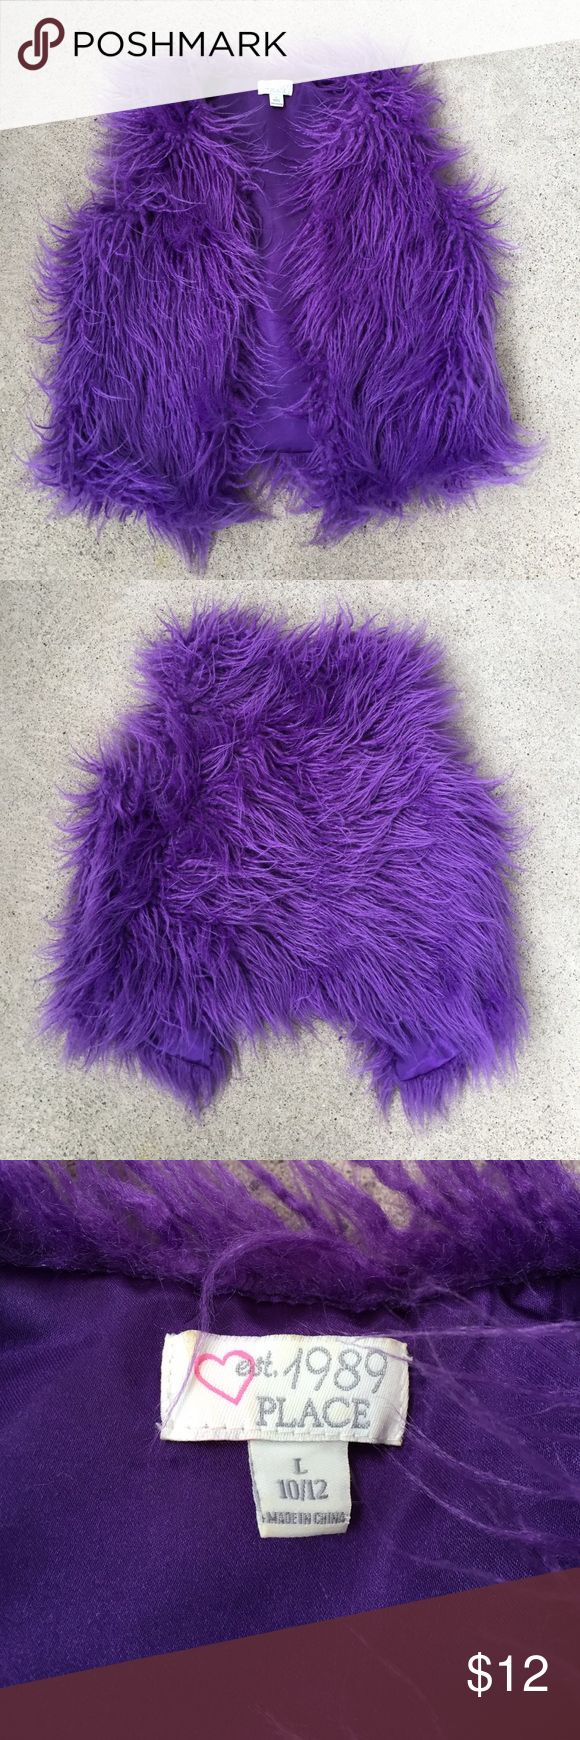 Children's Place Furry Purple Vest In nice condition for a used item, fun furry purple vest! Children's Place Jackets & Coats Vests